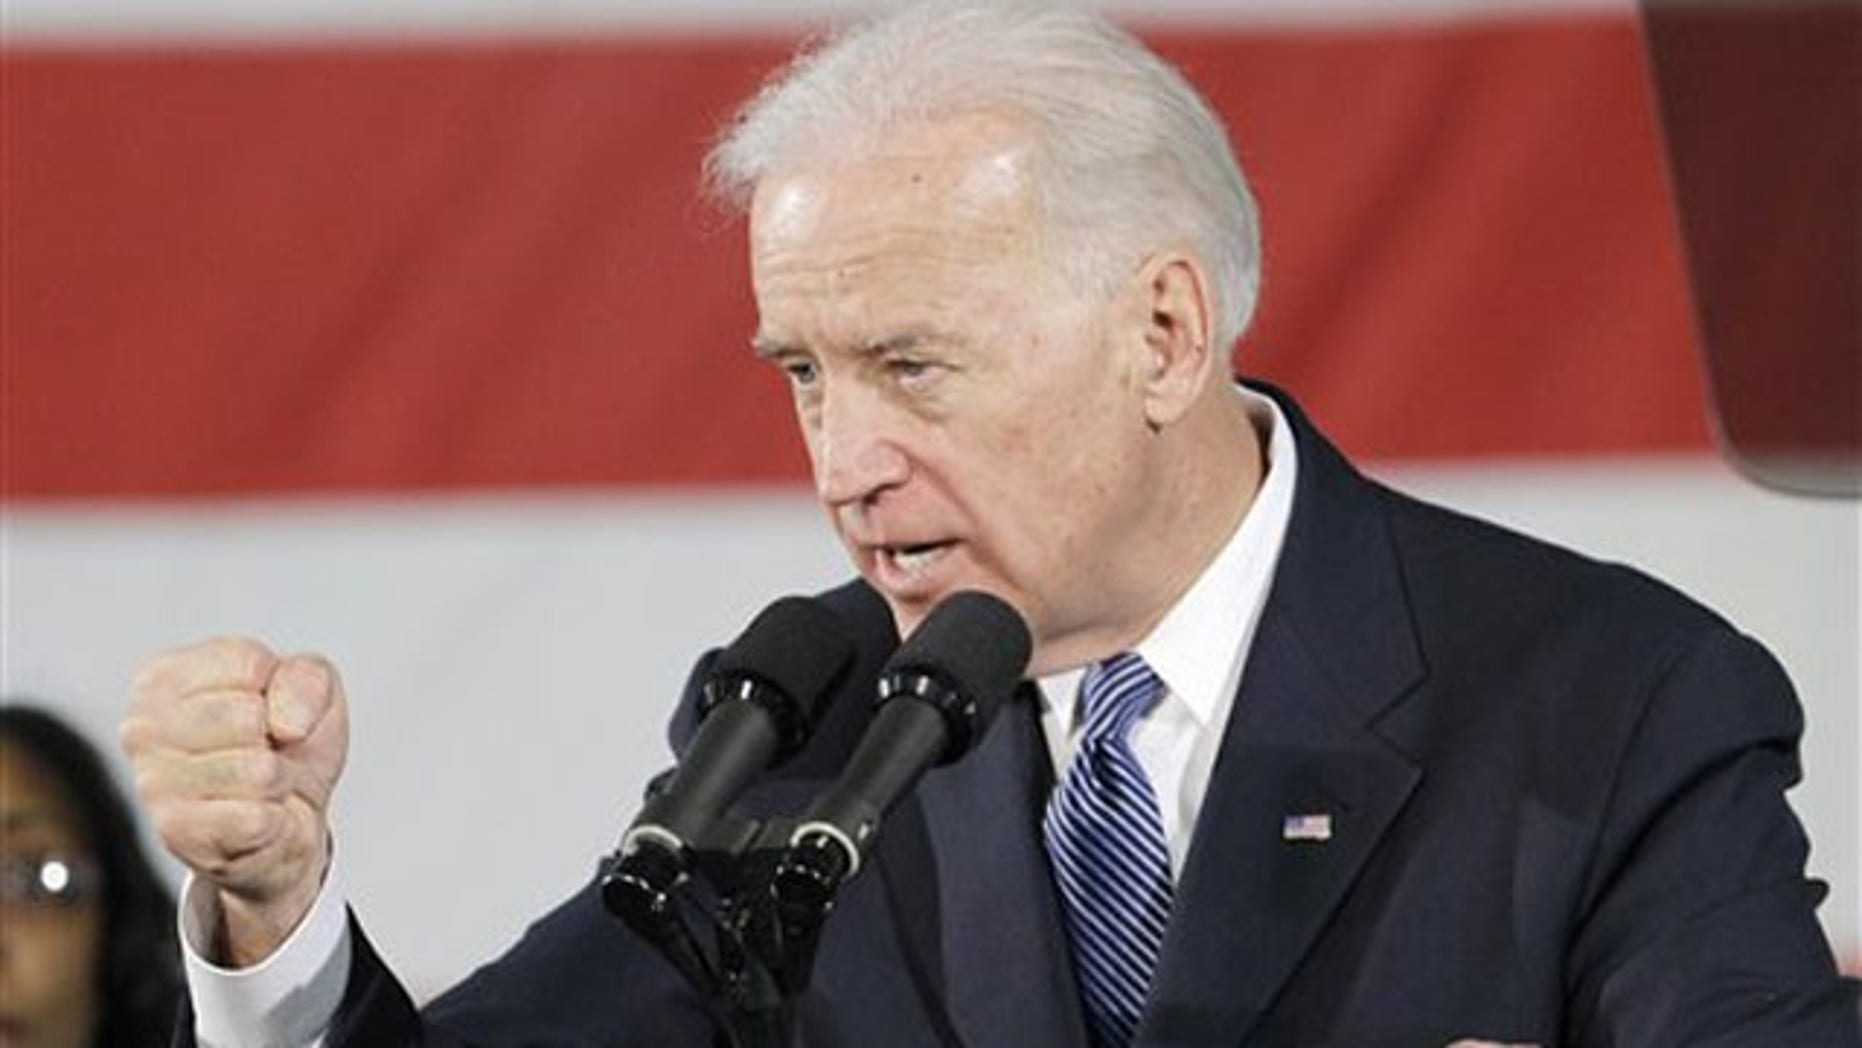 Vice President Joe Biden speaks at Ener1, Inc., in Greenfield, Ind., Jan. 26.